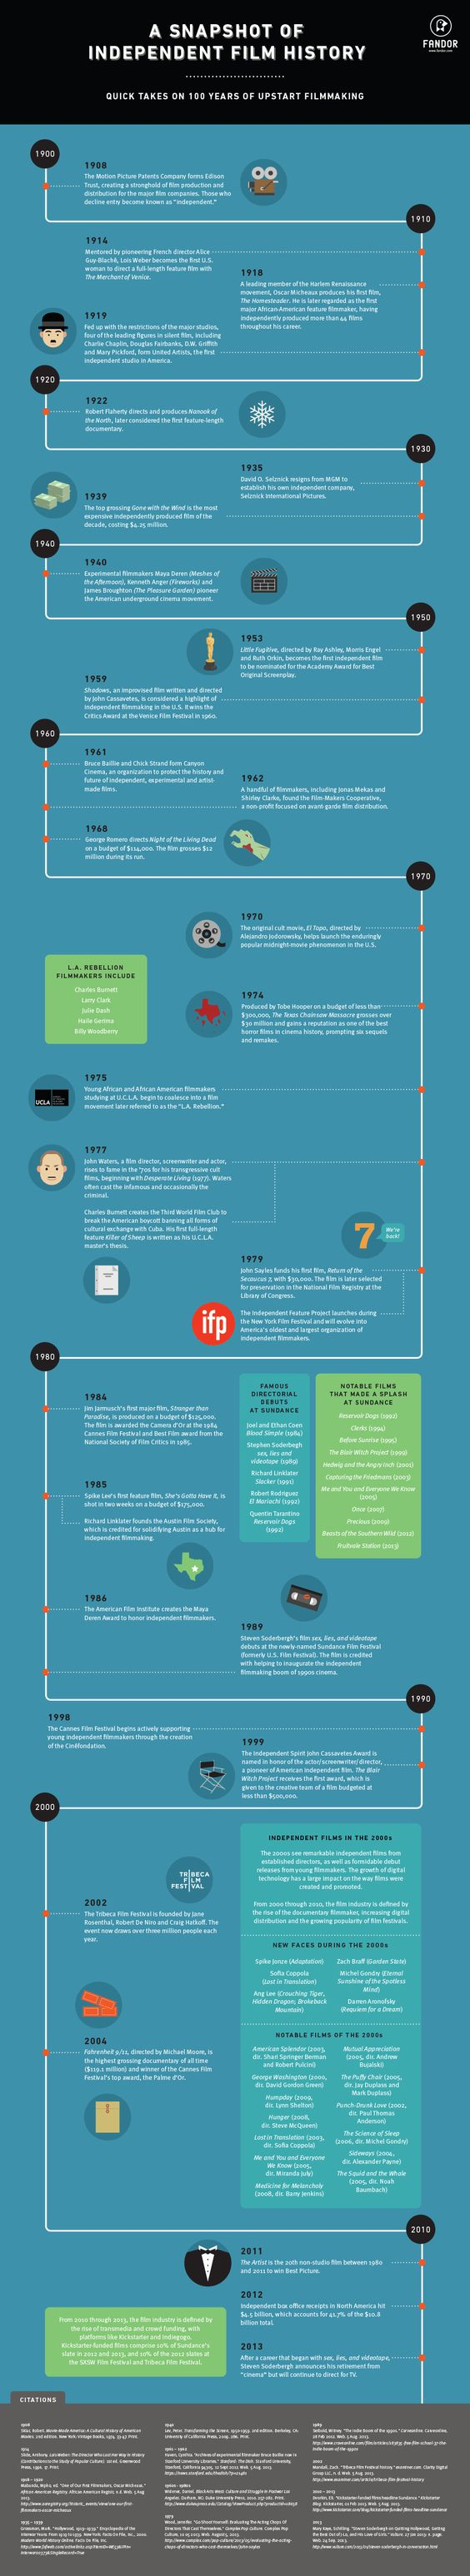 Check out this excellent graphic on Fandor detailing the evolution of the independent film industry.